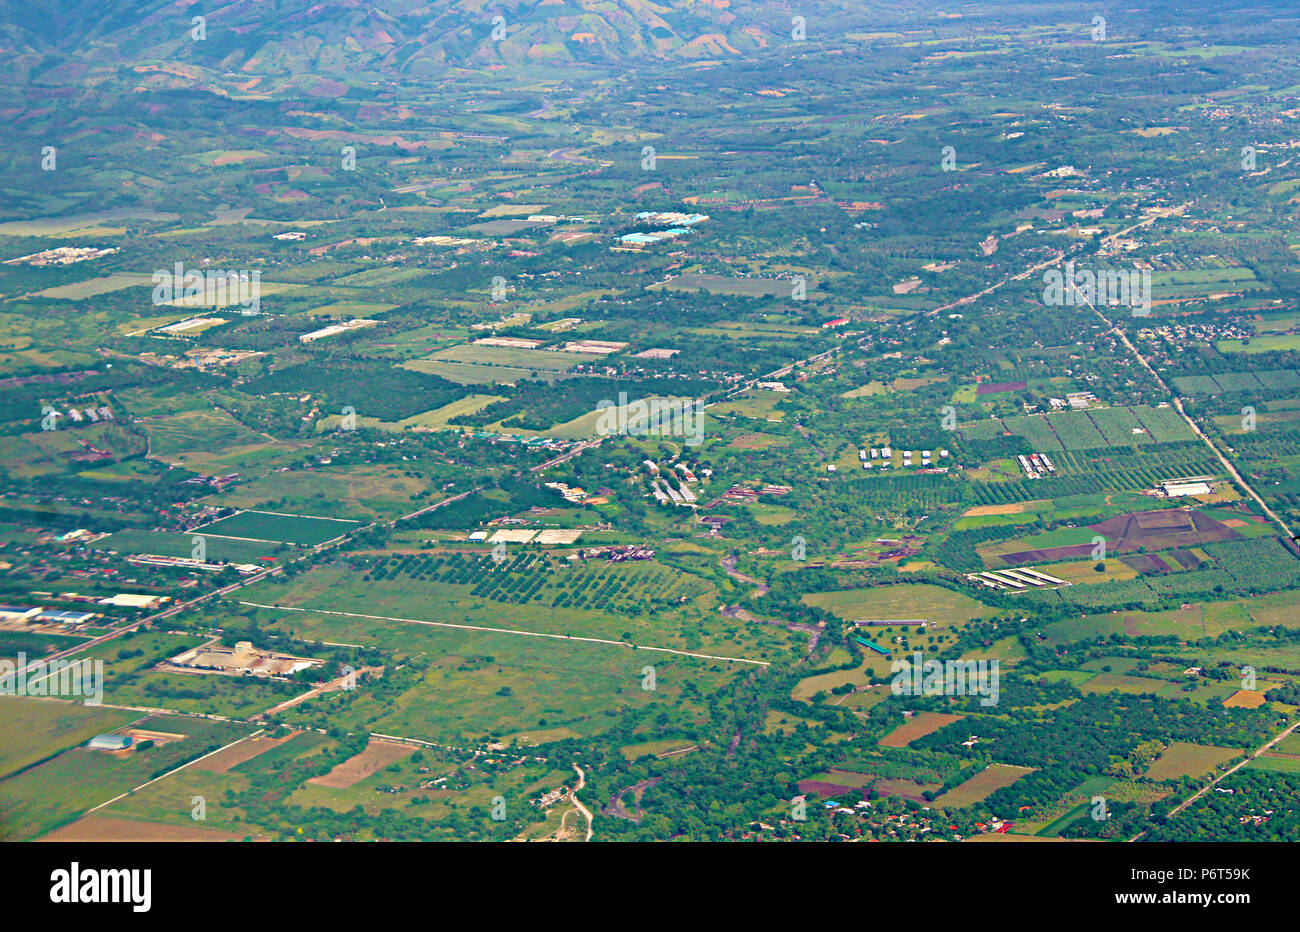 Aerial Picture of a Green Farm, Aerial Shot - Stock Image